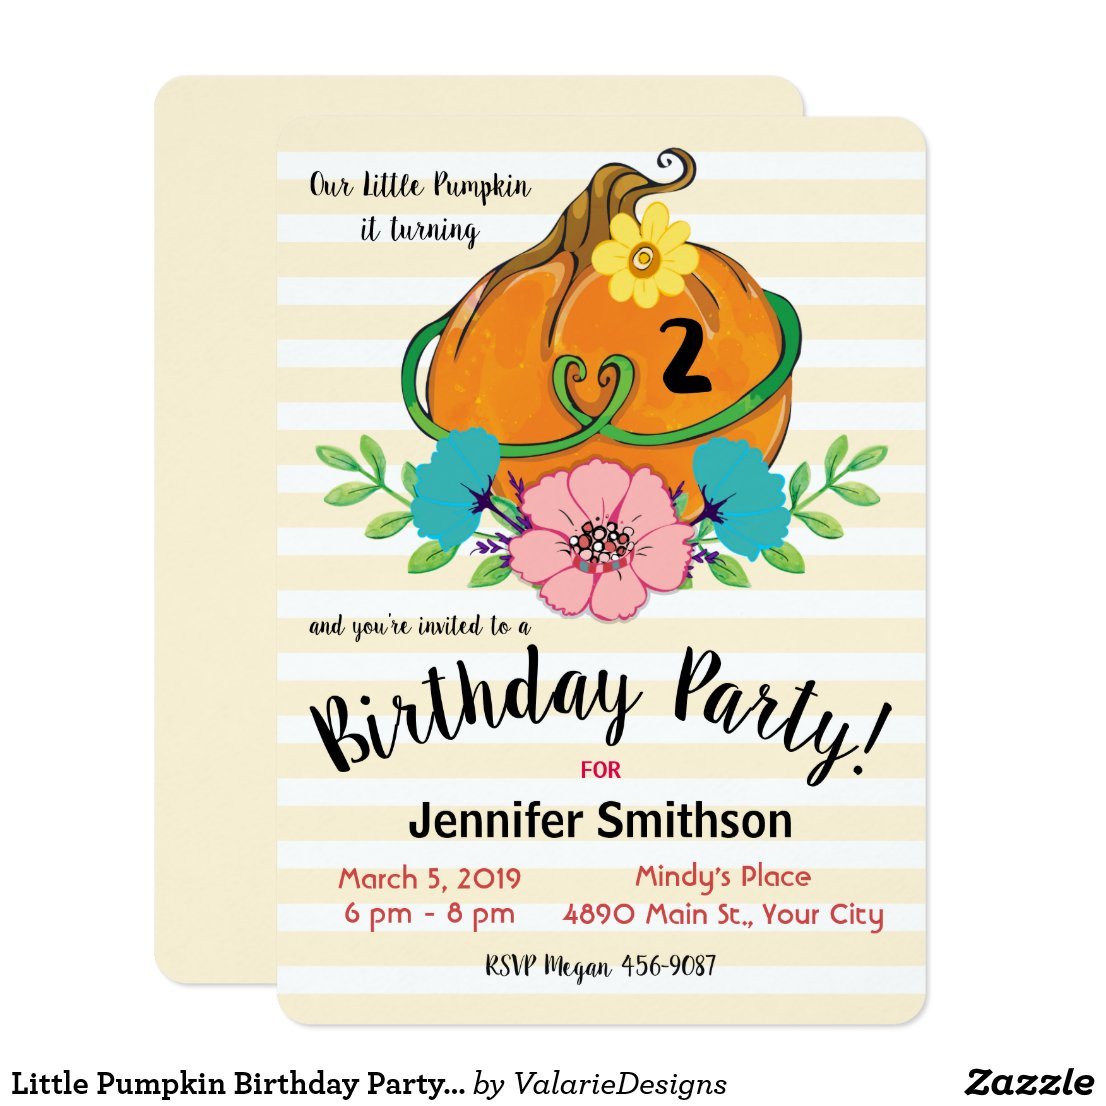 Little Pumpkin Birthday Party Invitations